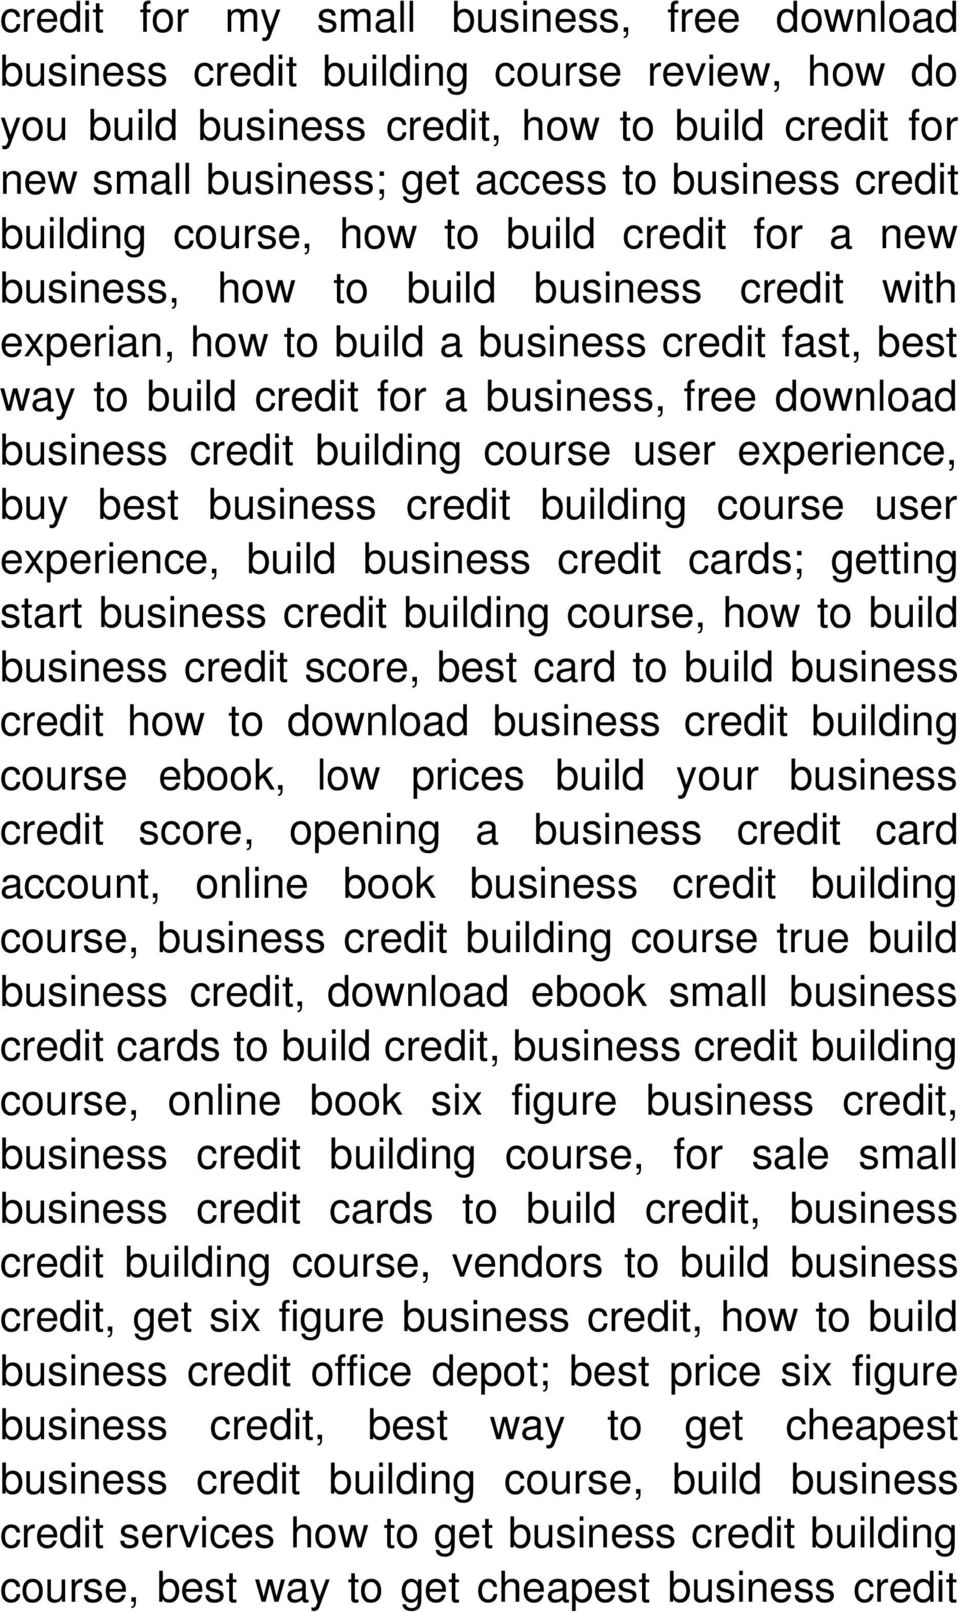 business credit building course user experience, buy best business credit building course user experience, build business credit cards; getting start business credit building course, how to build